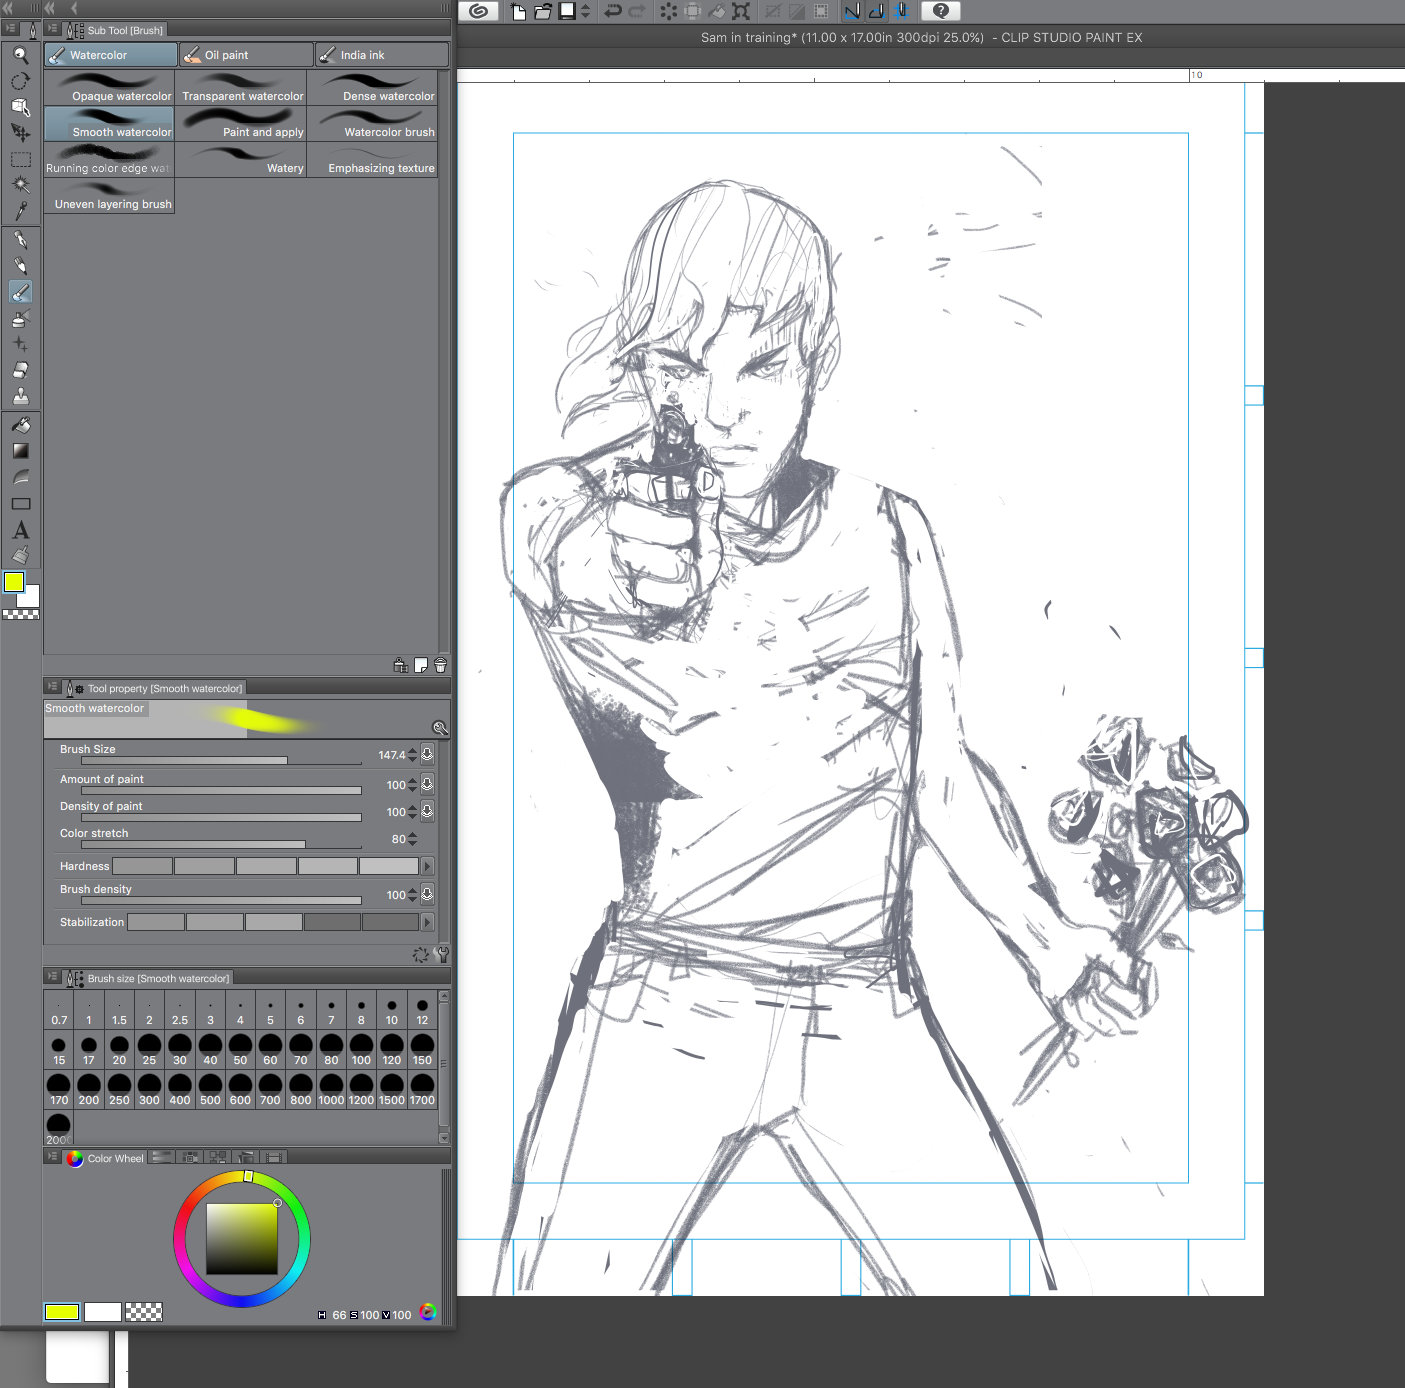 Clip Studio Paint Pencilling Sam Tilted Sun becky jewell.png